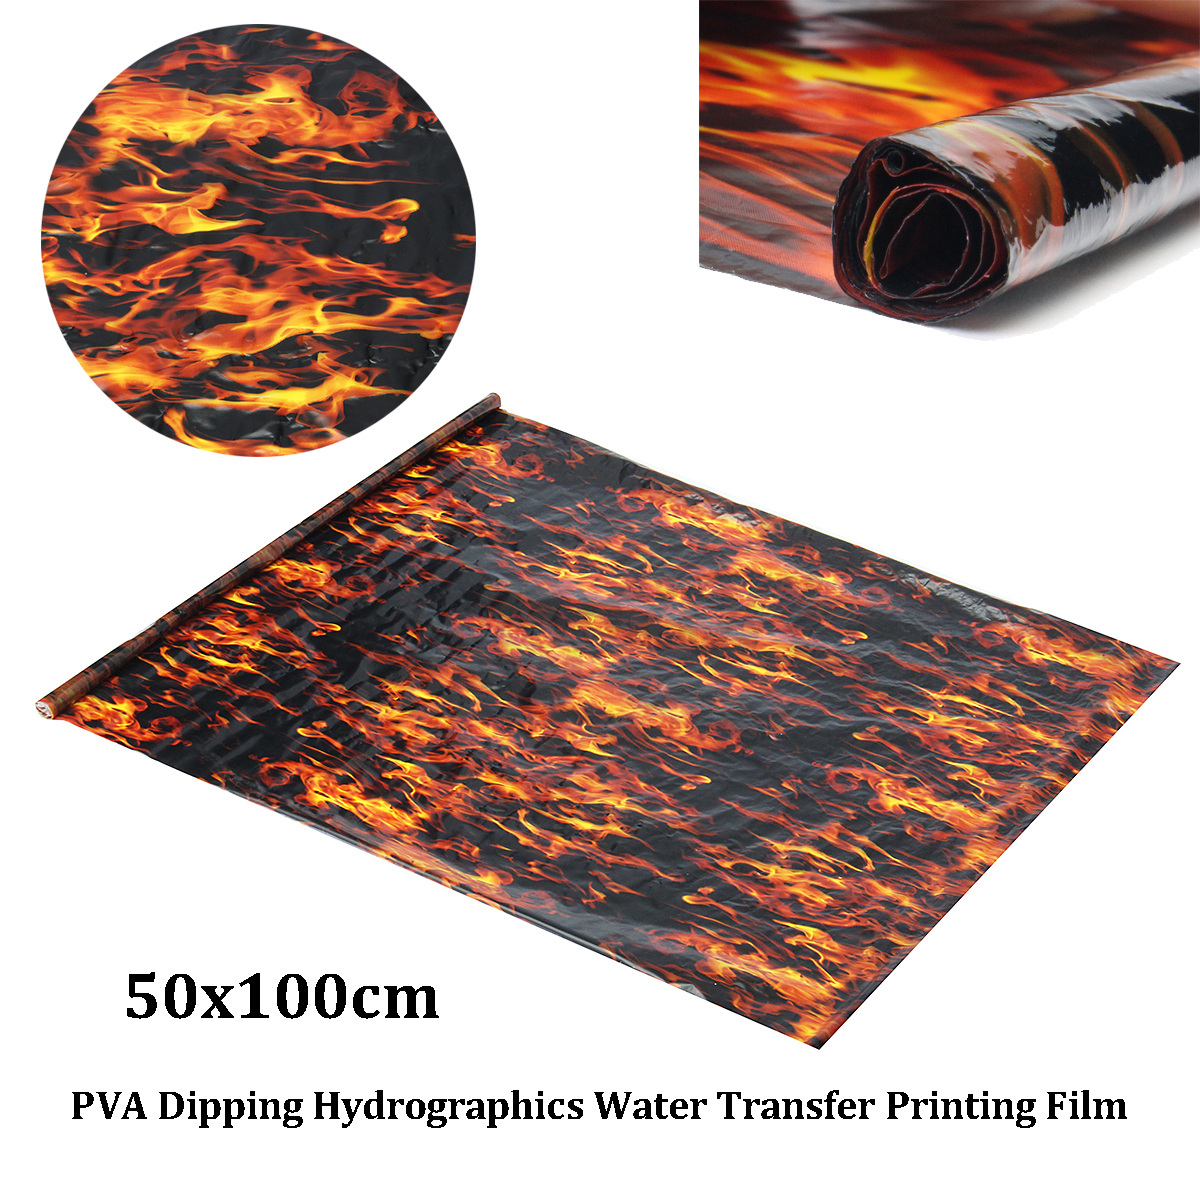 pva hydrographic water transfer hydro dipping dip flames. Black Bedroom Furniture Sets. Home Design Ideas